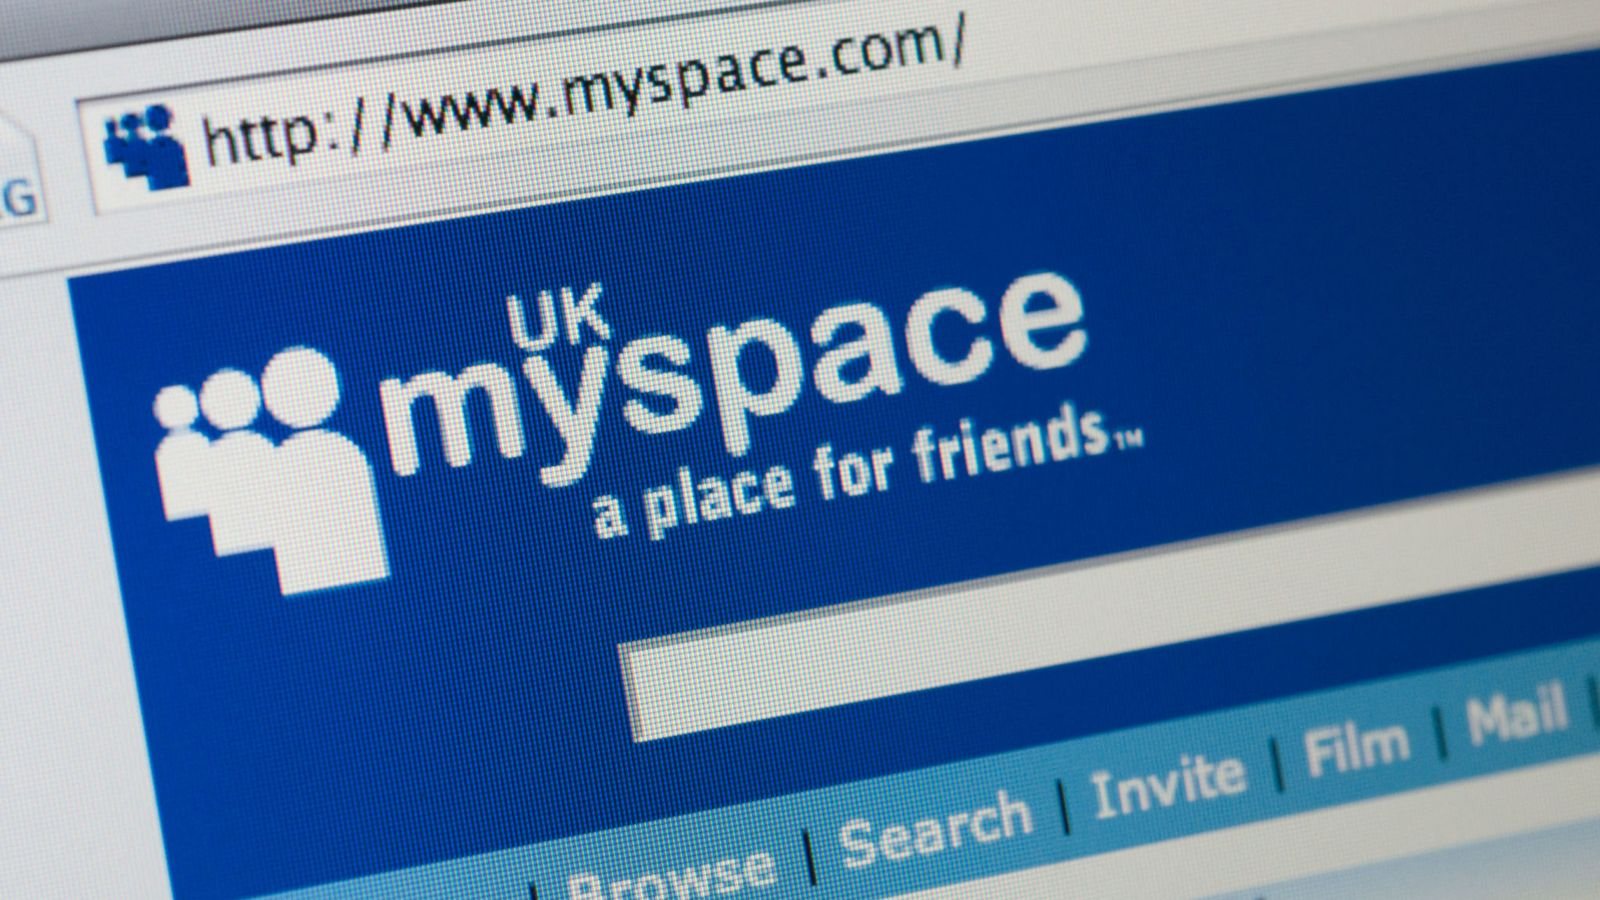 MySpace lost over 50 million uploaded songs from a period of 12 years